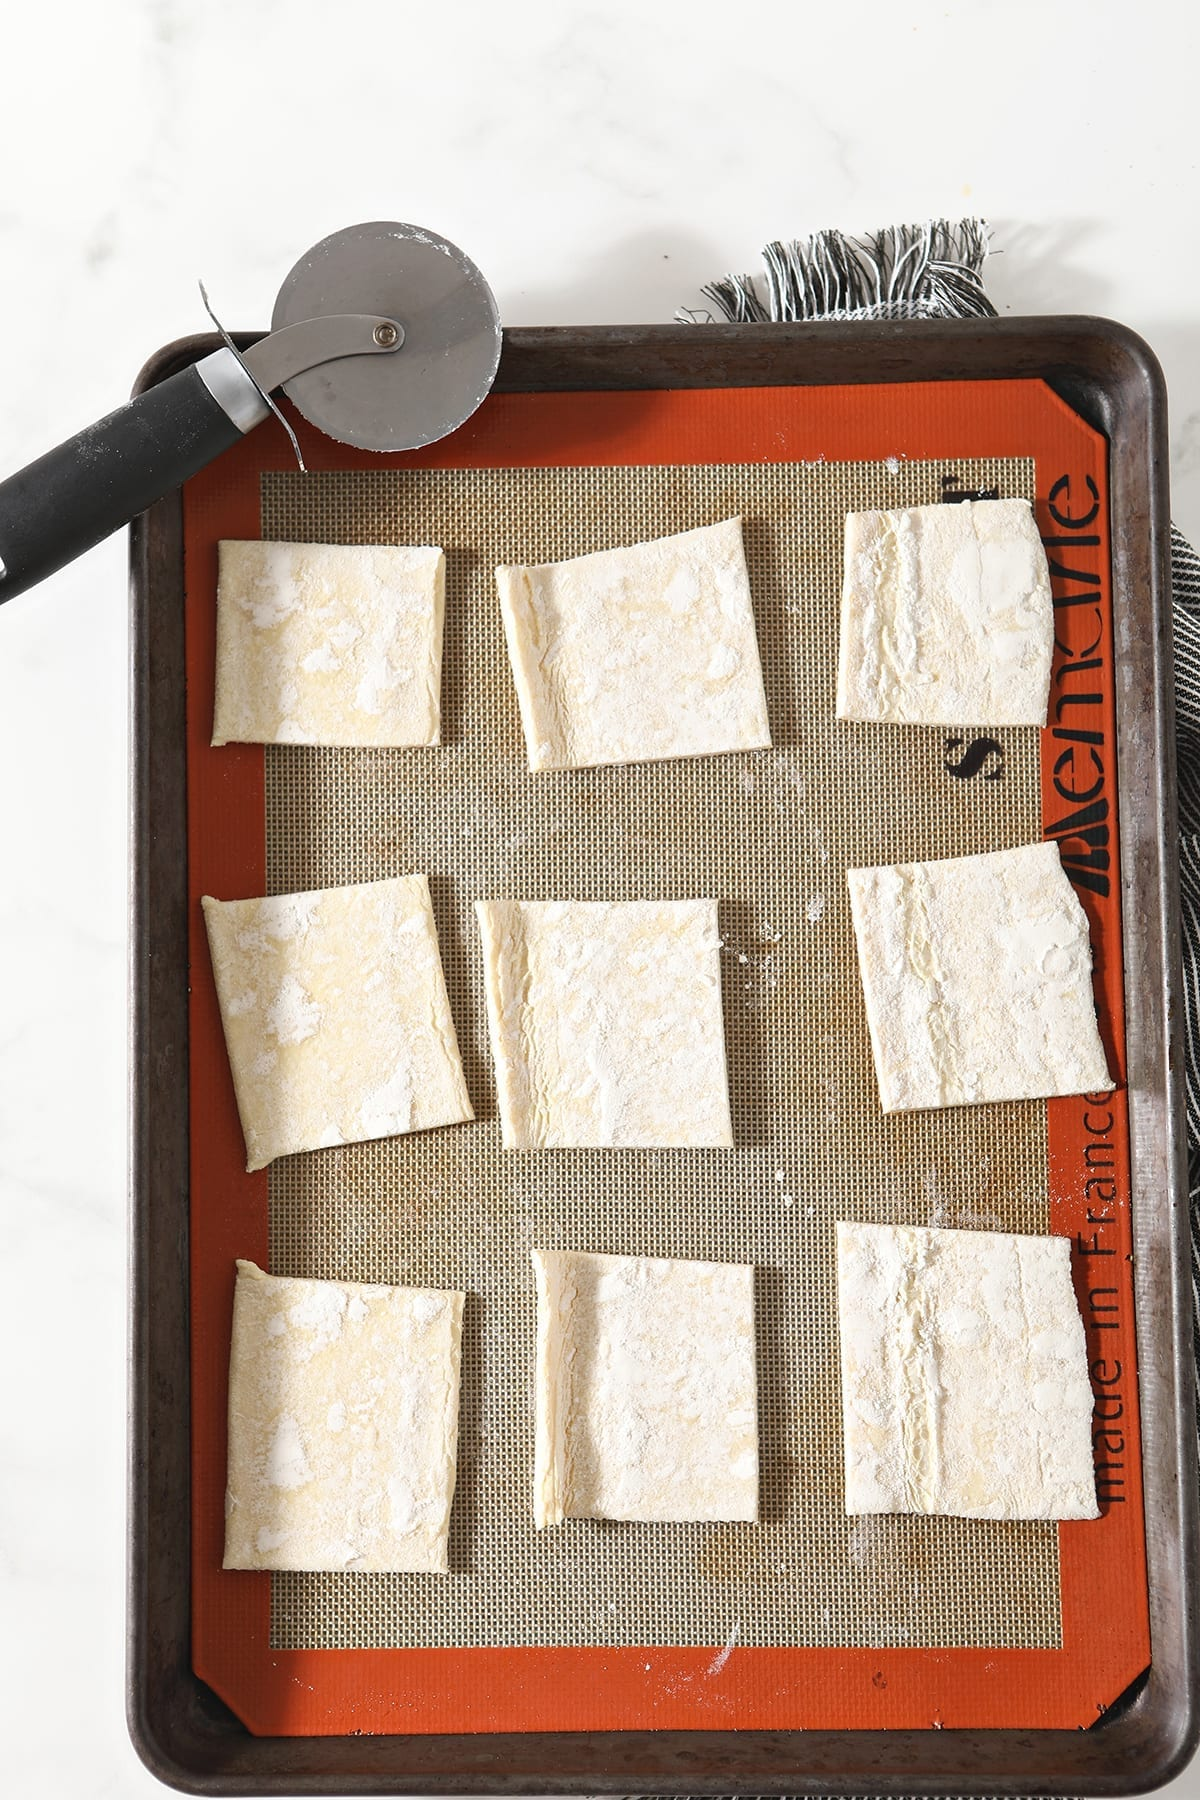 Squares of puff pastry on a Silpat-lined baking sheet with a pizza cutter